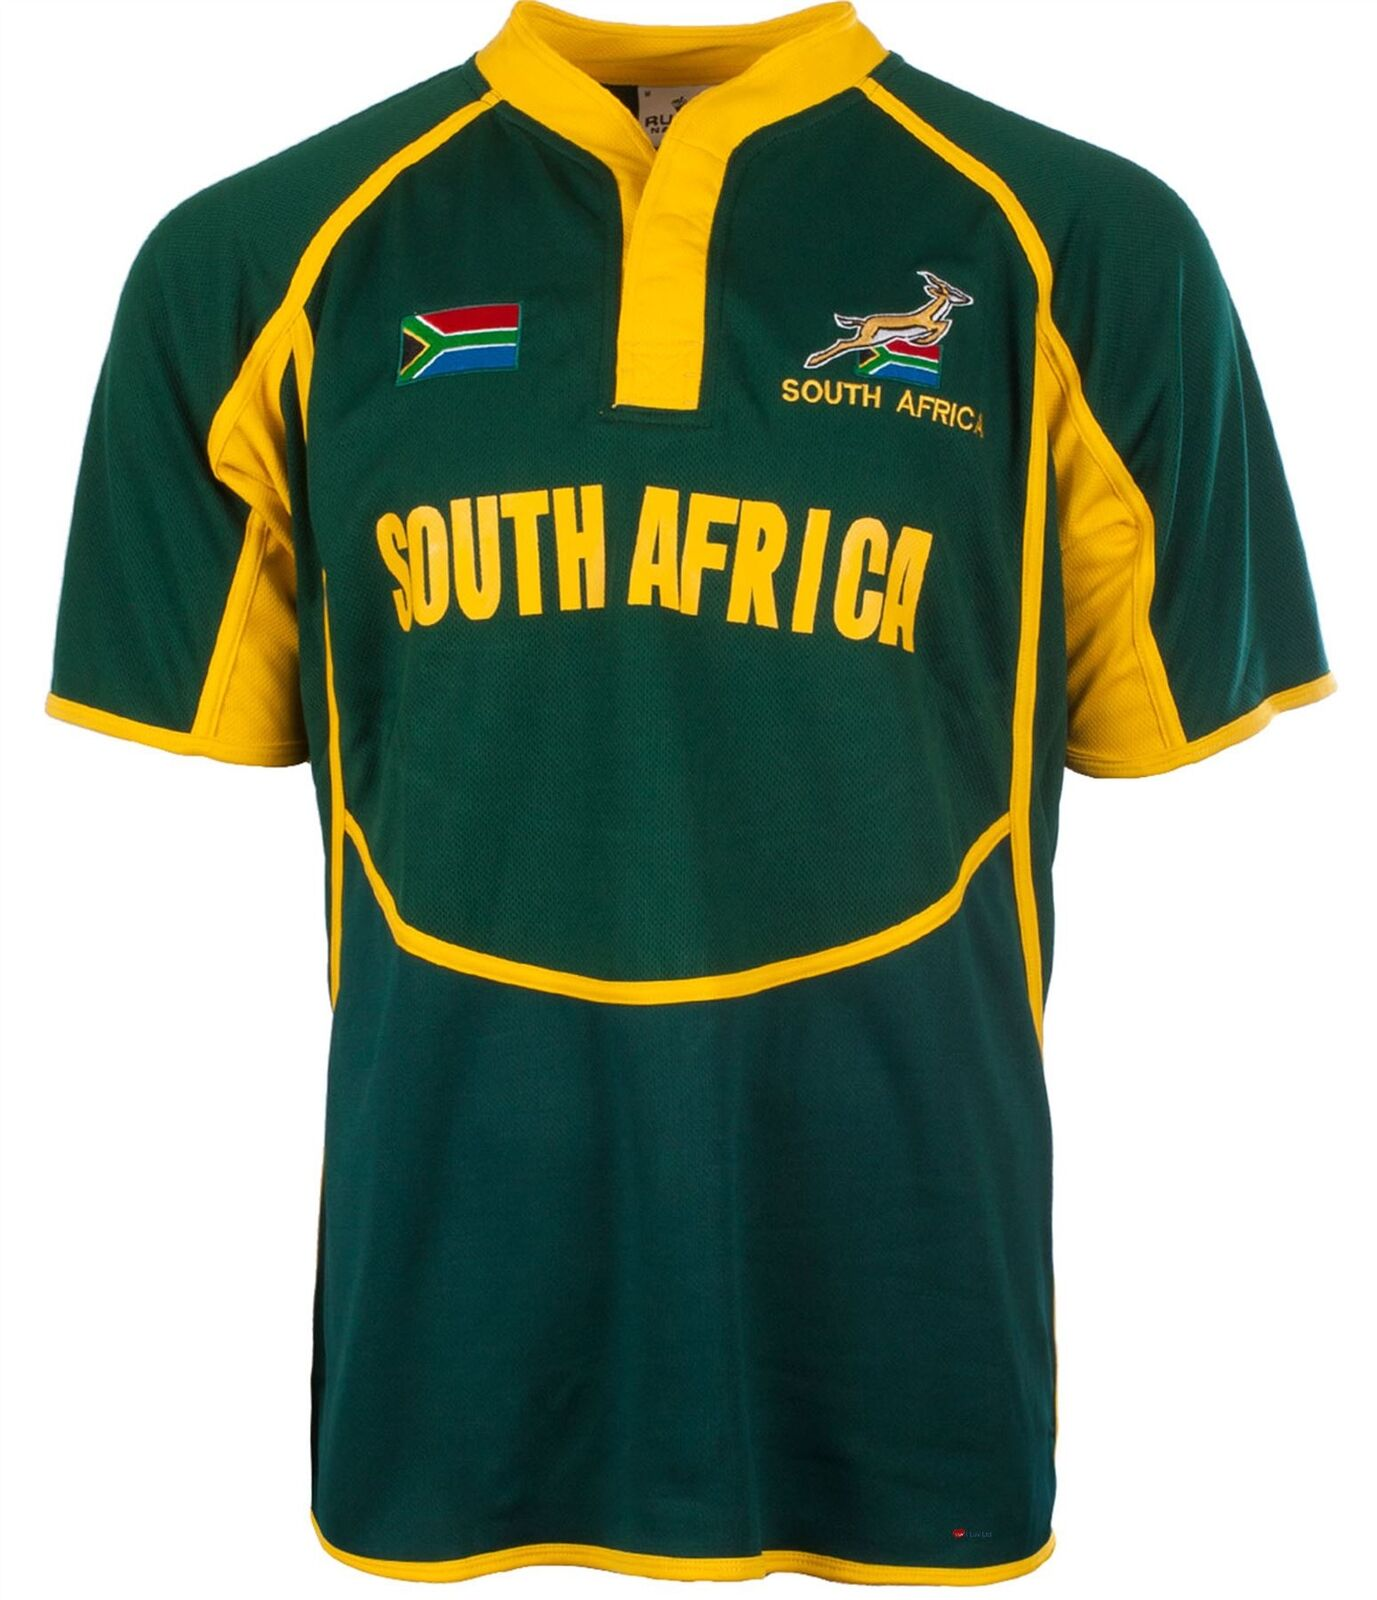 Gents Cooldry Style Rugby Shirt In South Africa Colours Size 2X-Large